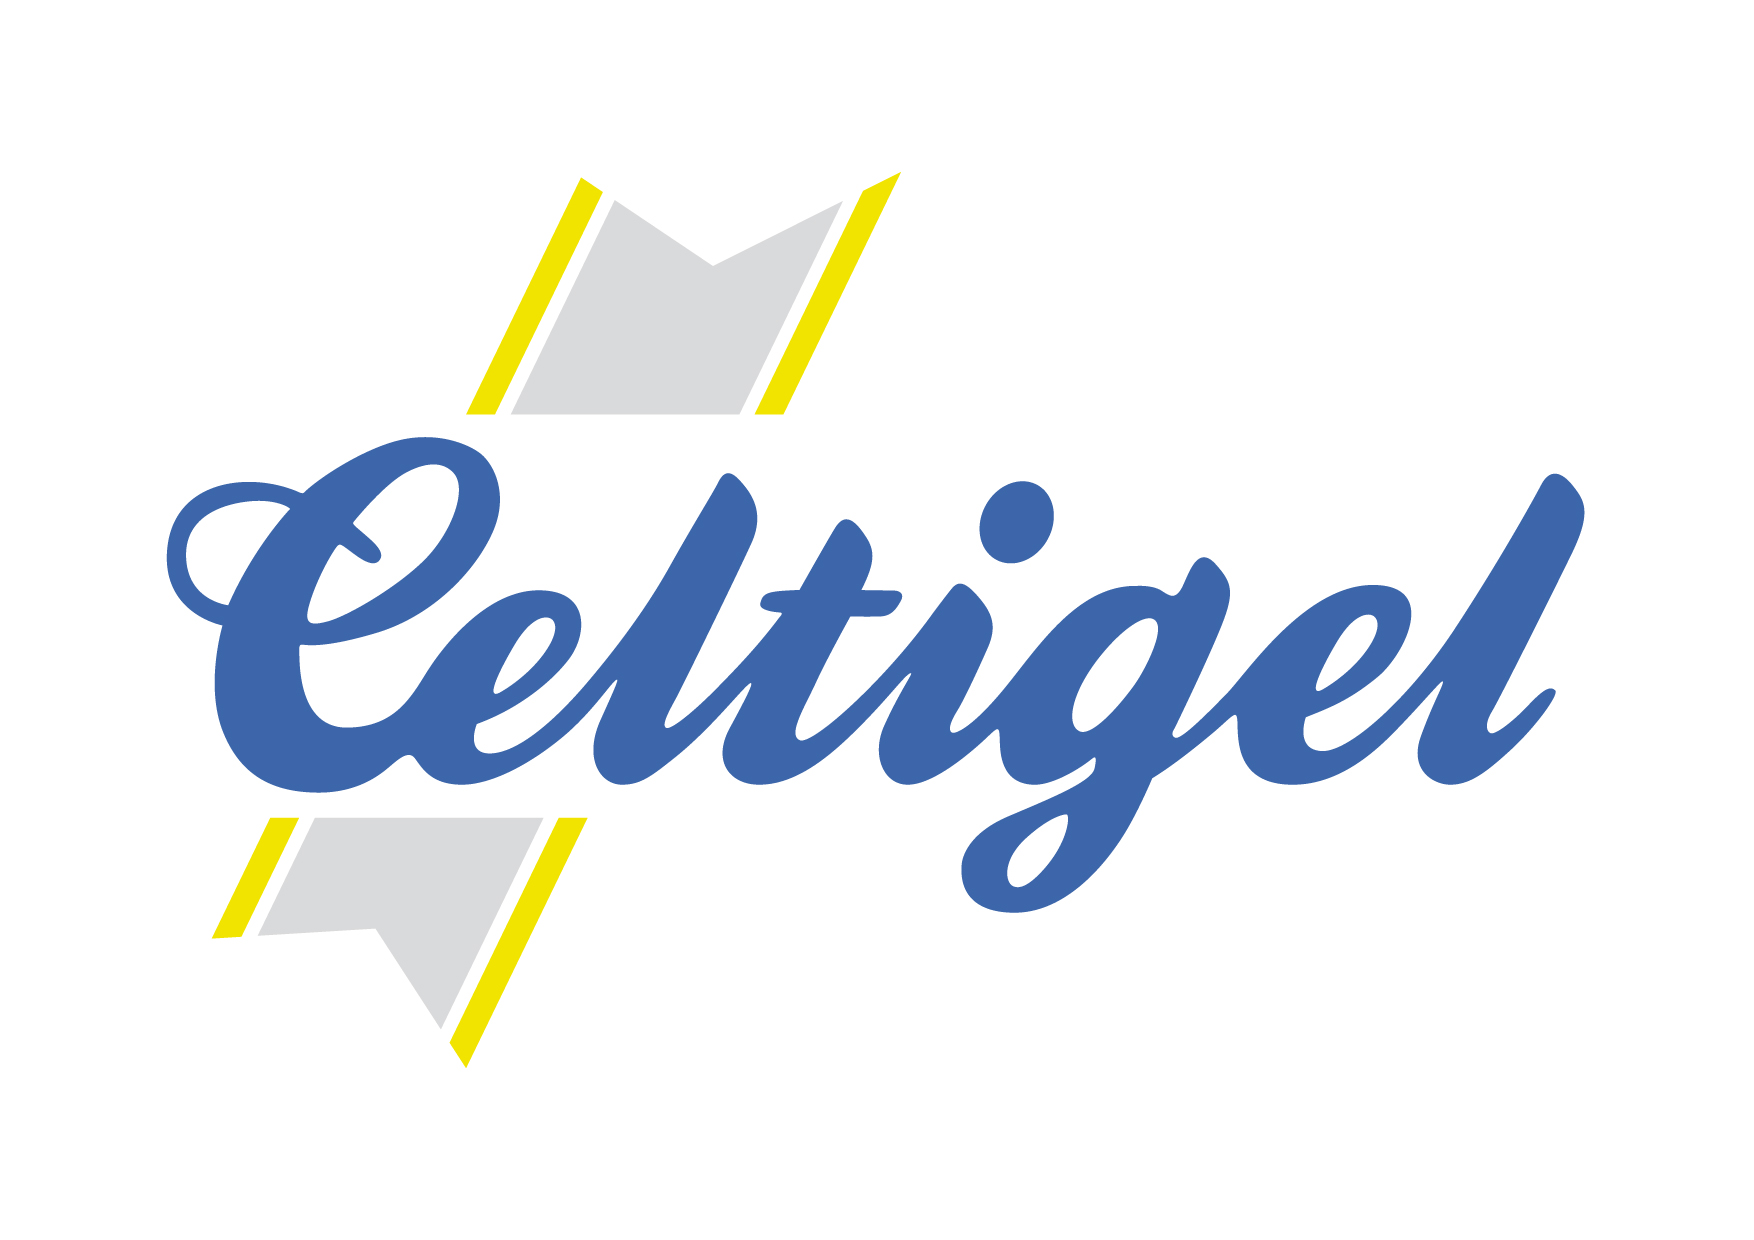 Celtigel